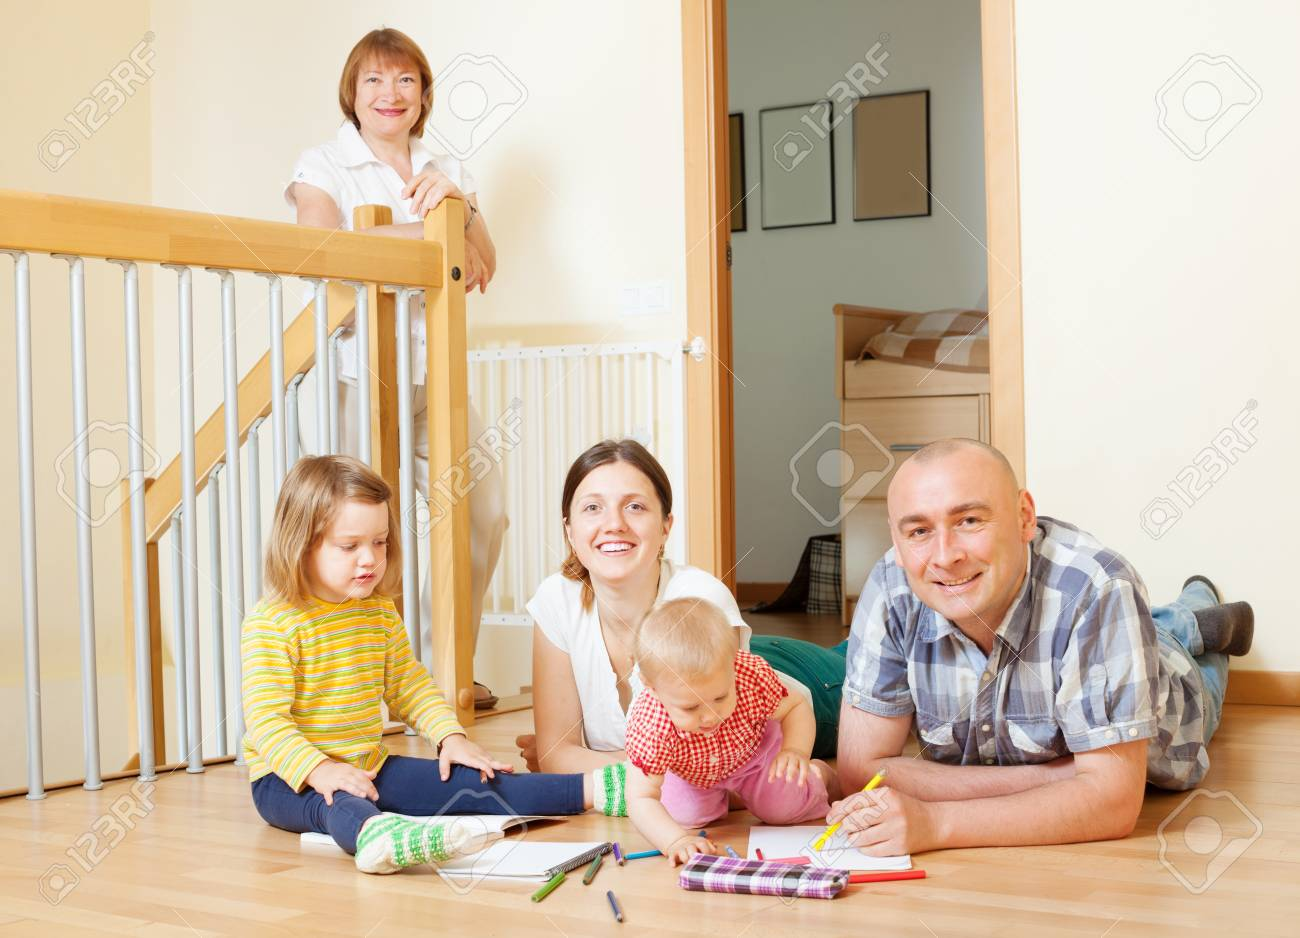 married couple with children and  grandmother in home interior together Stock Photo - 21234299